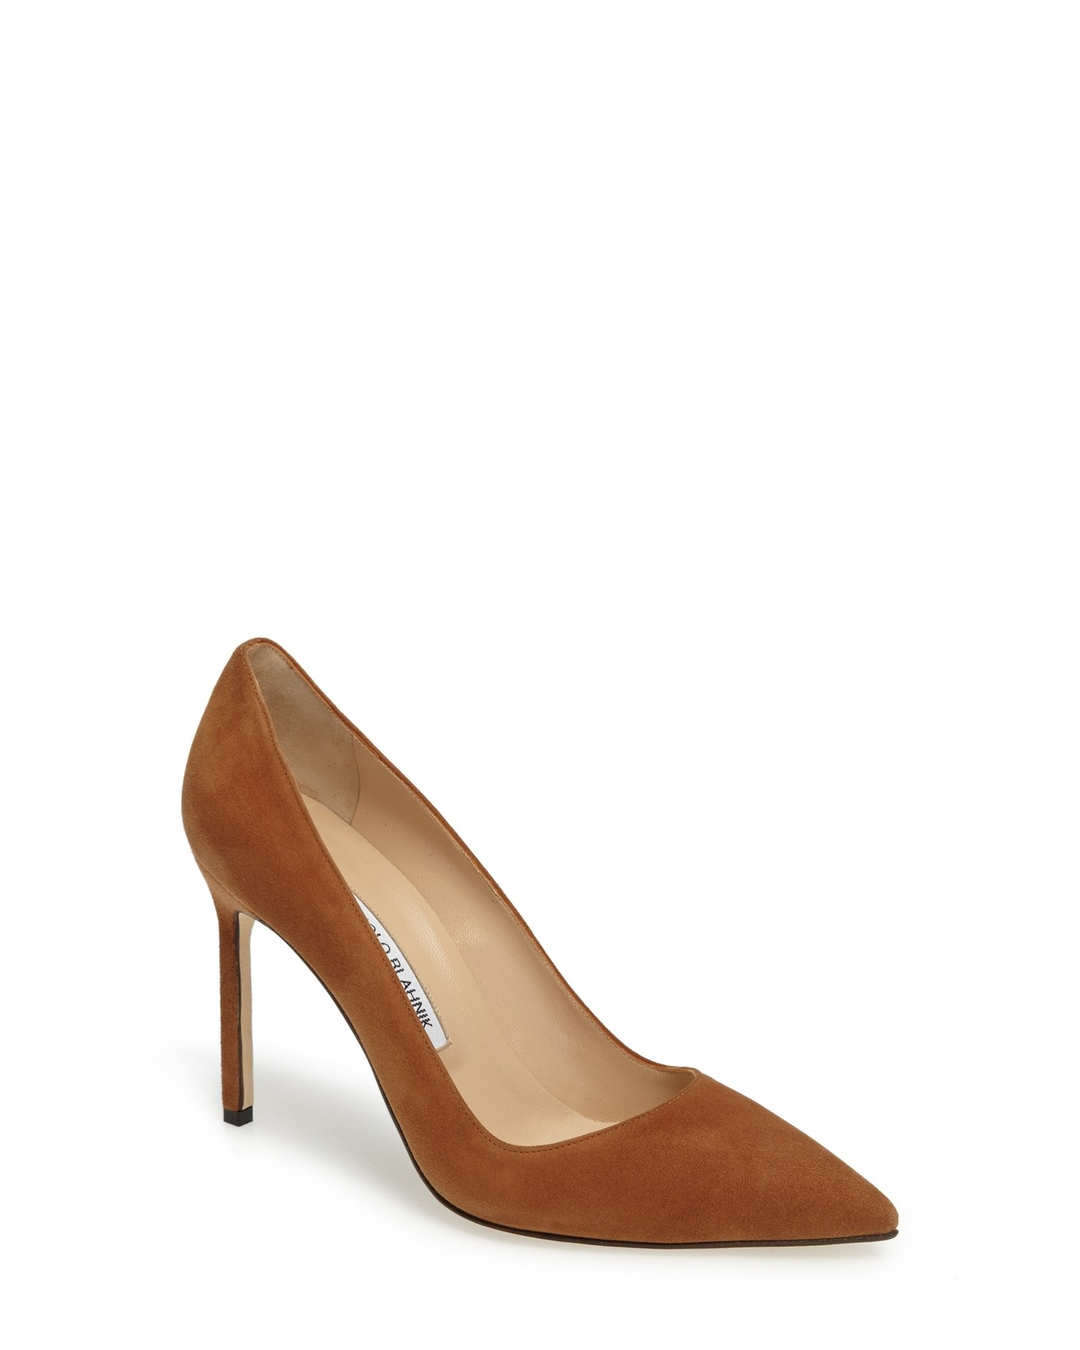 81a5df9558c53 Manolo Blahnik BB Suede 105mm Reviews and Sizing